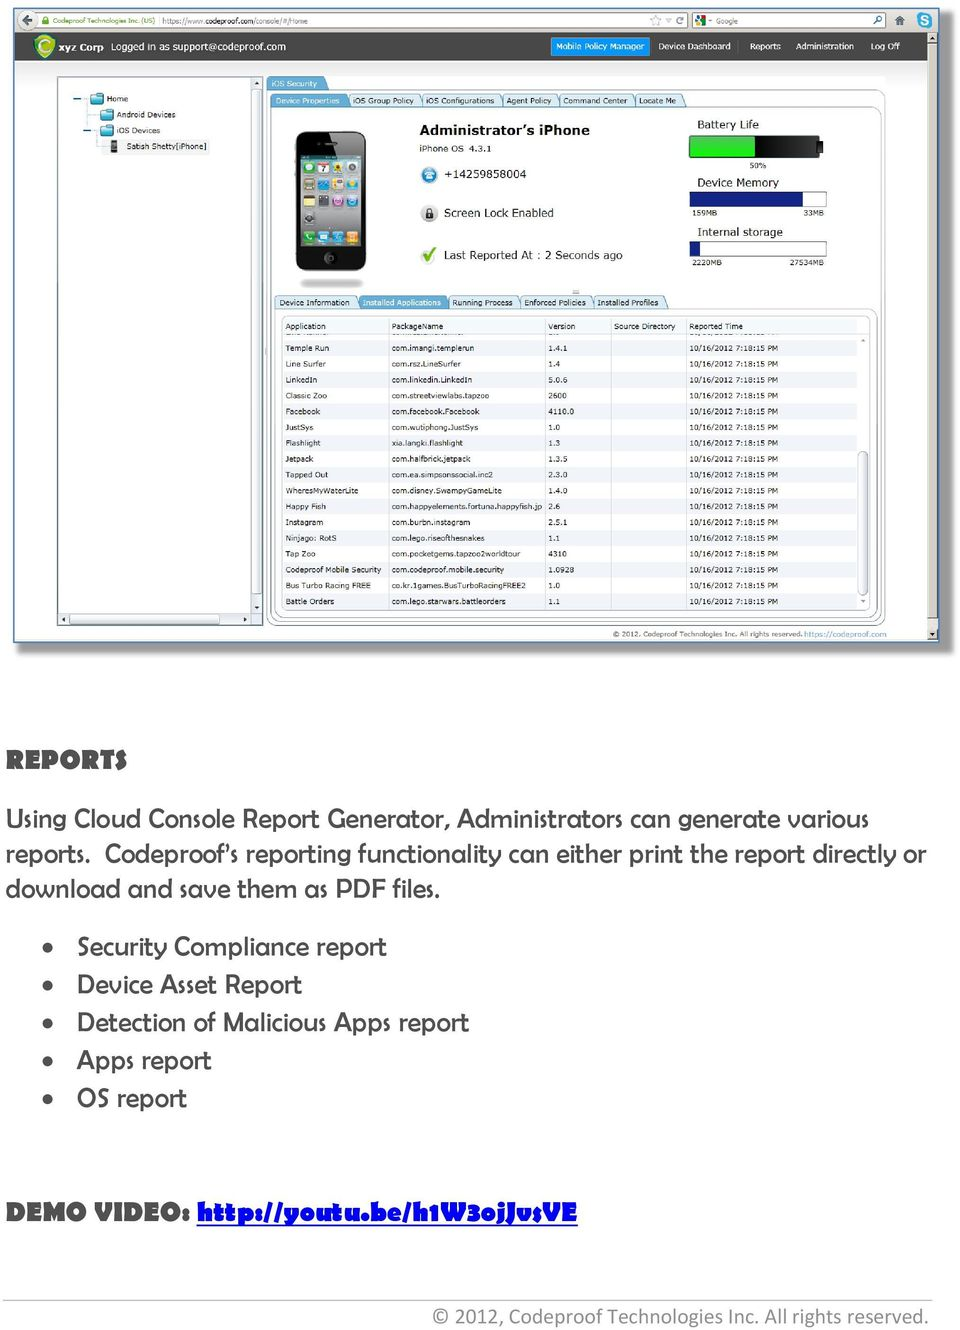 Codeproof s reporting functionality can either print the report directly or download